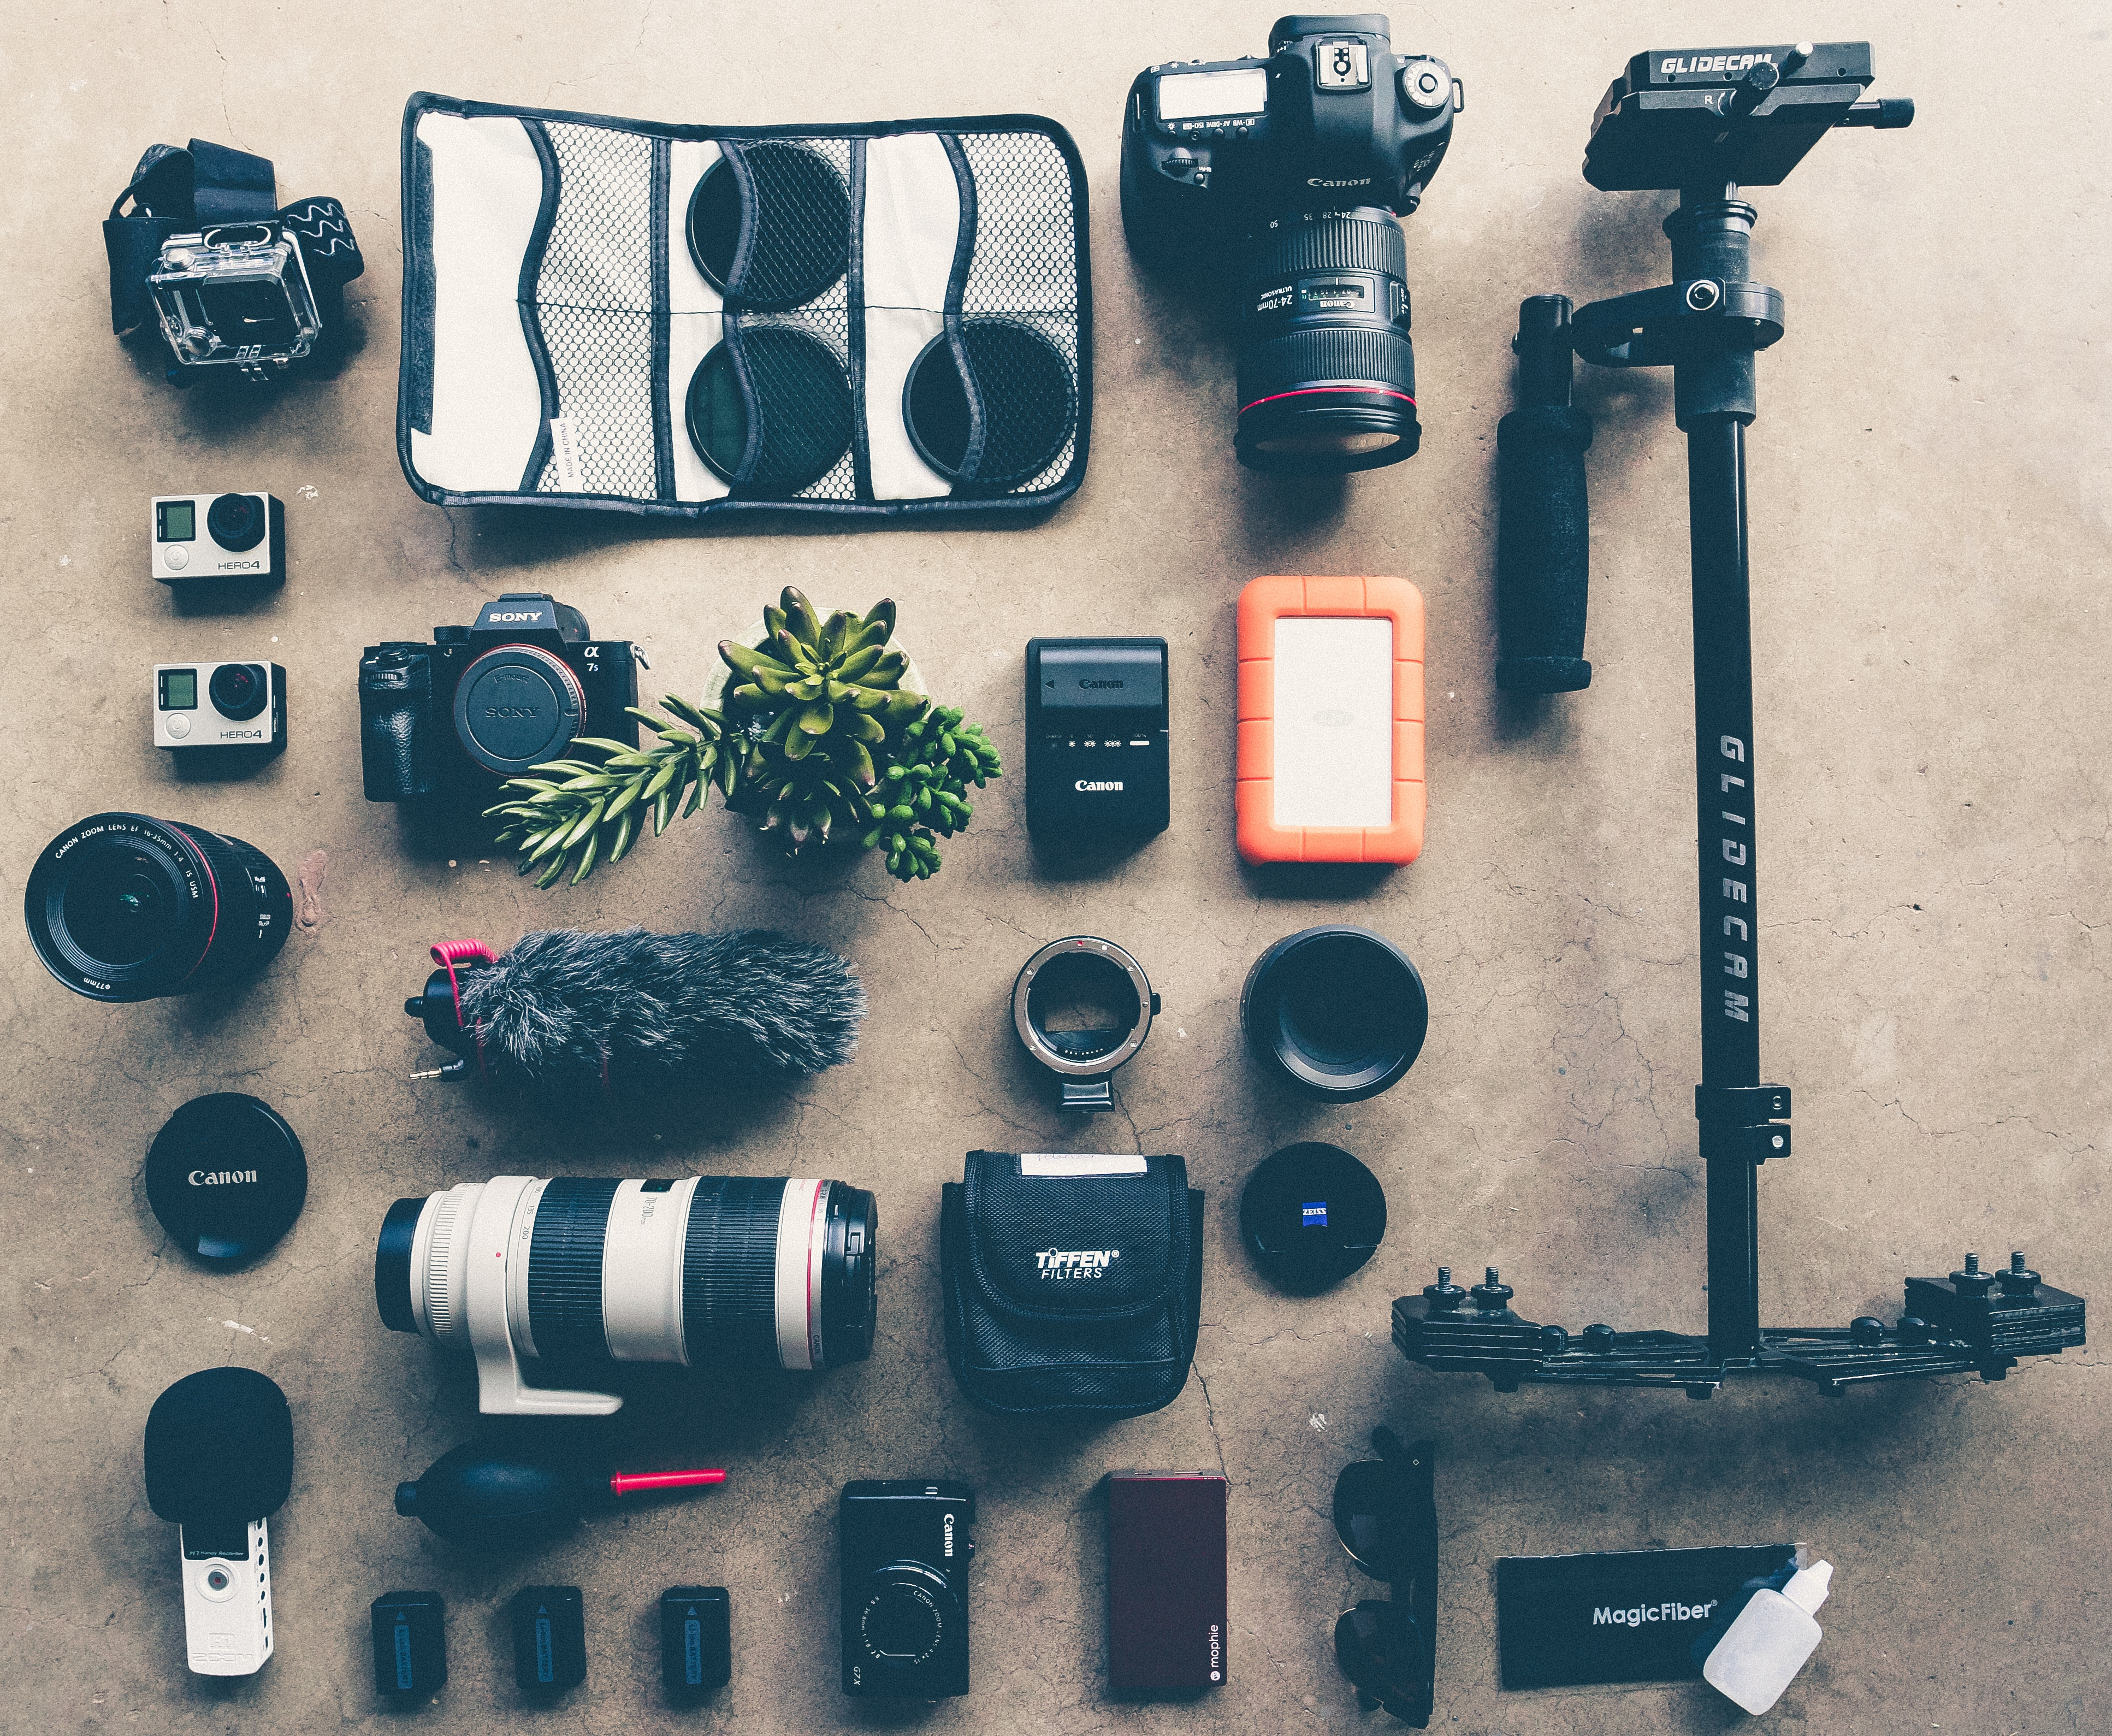 Image Showing A Bunch Of Camera Equipment To Show What Does Wedding Photography Assistant Do